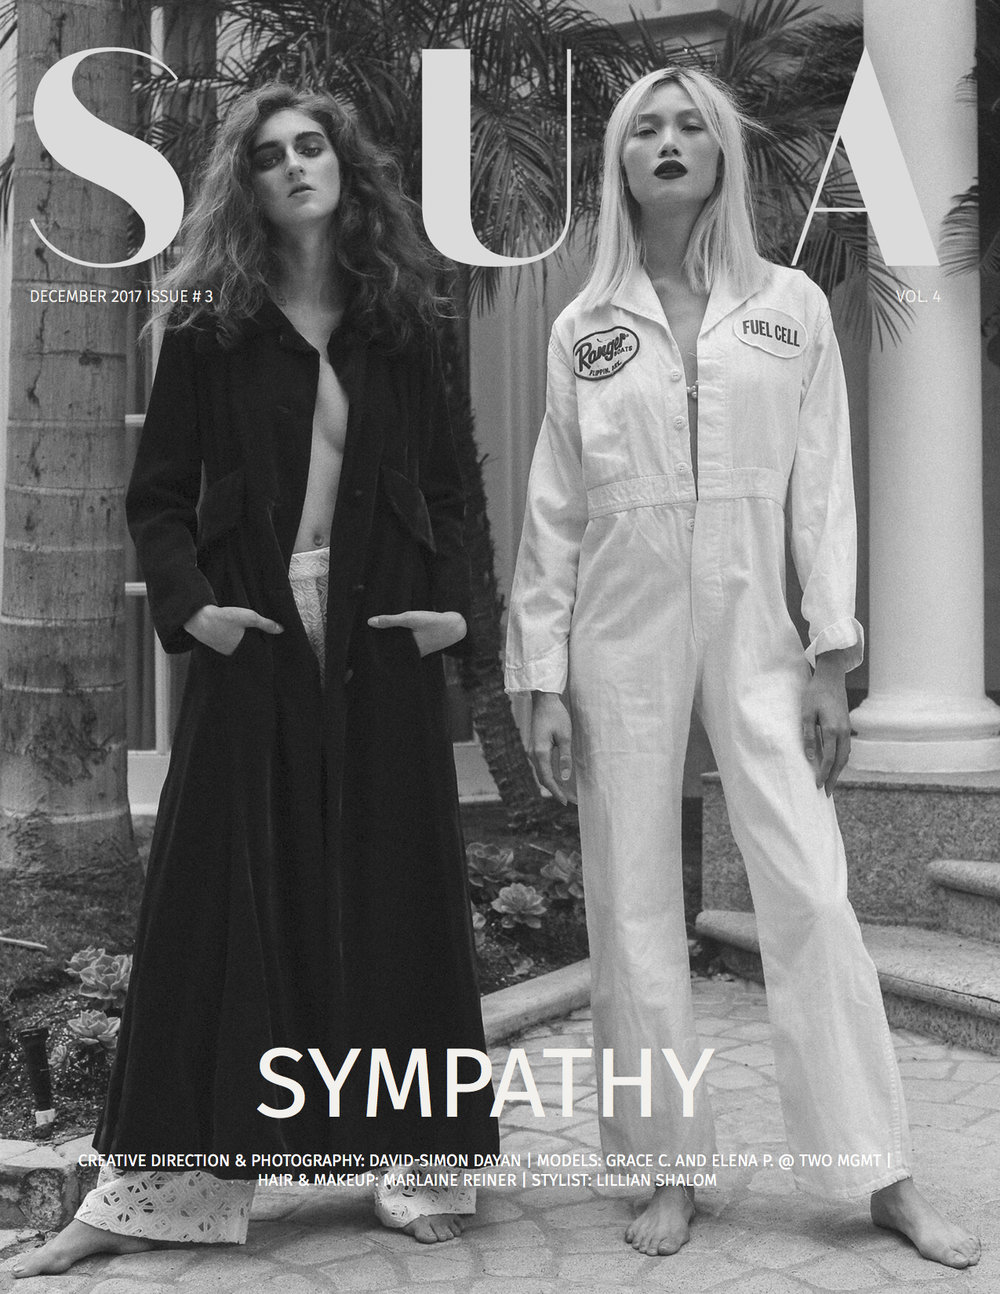 SHUBA MAGAZINE #3 DECEMBER  VOL. 4 SYMPATHY (dragged).jpg